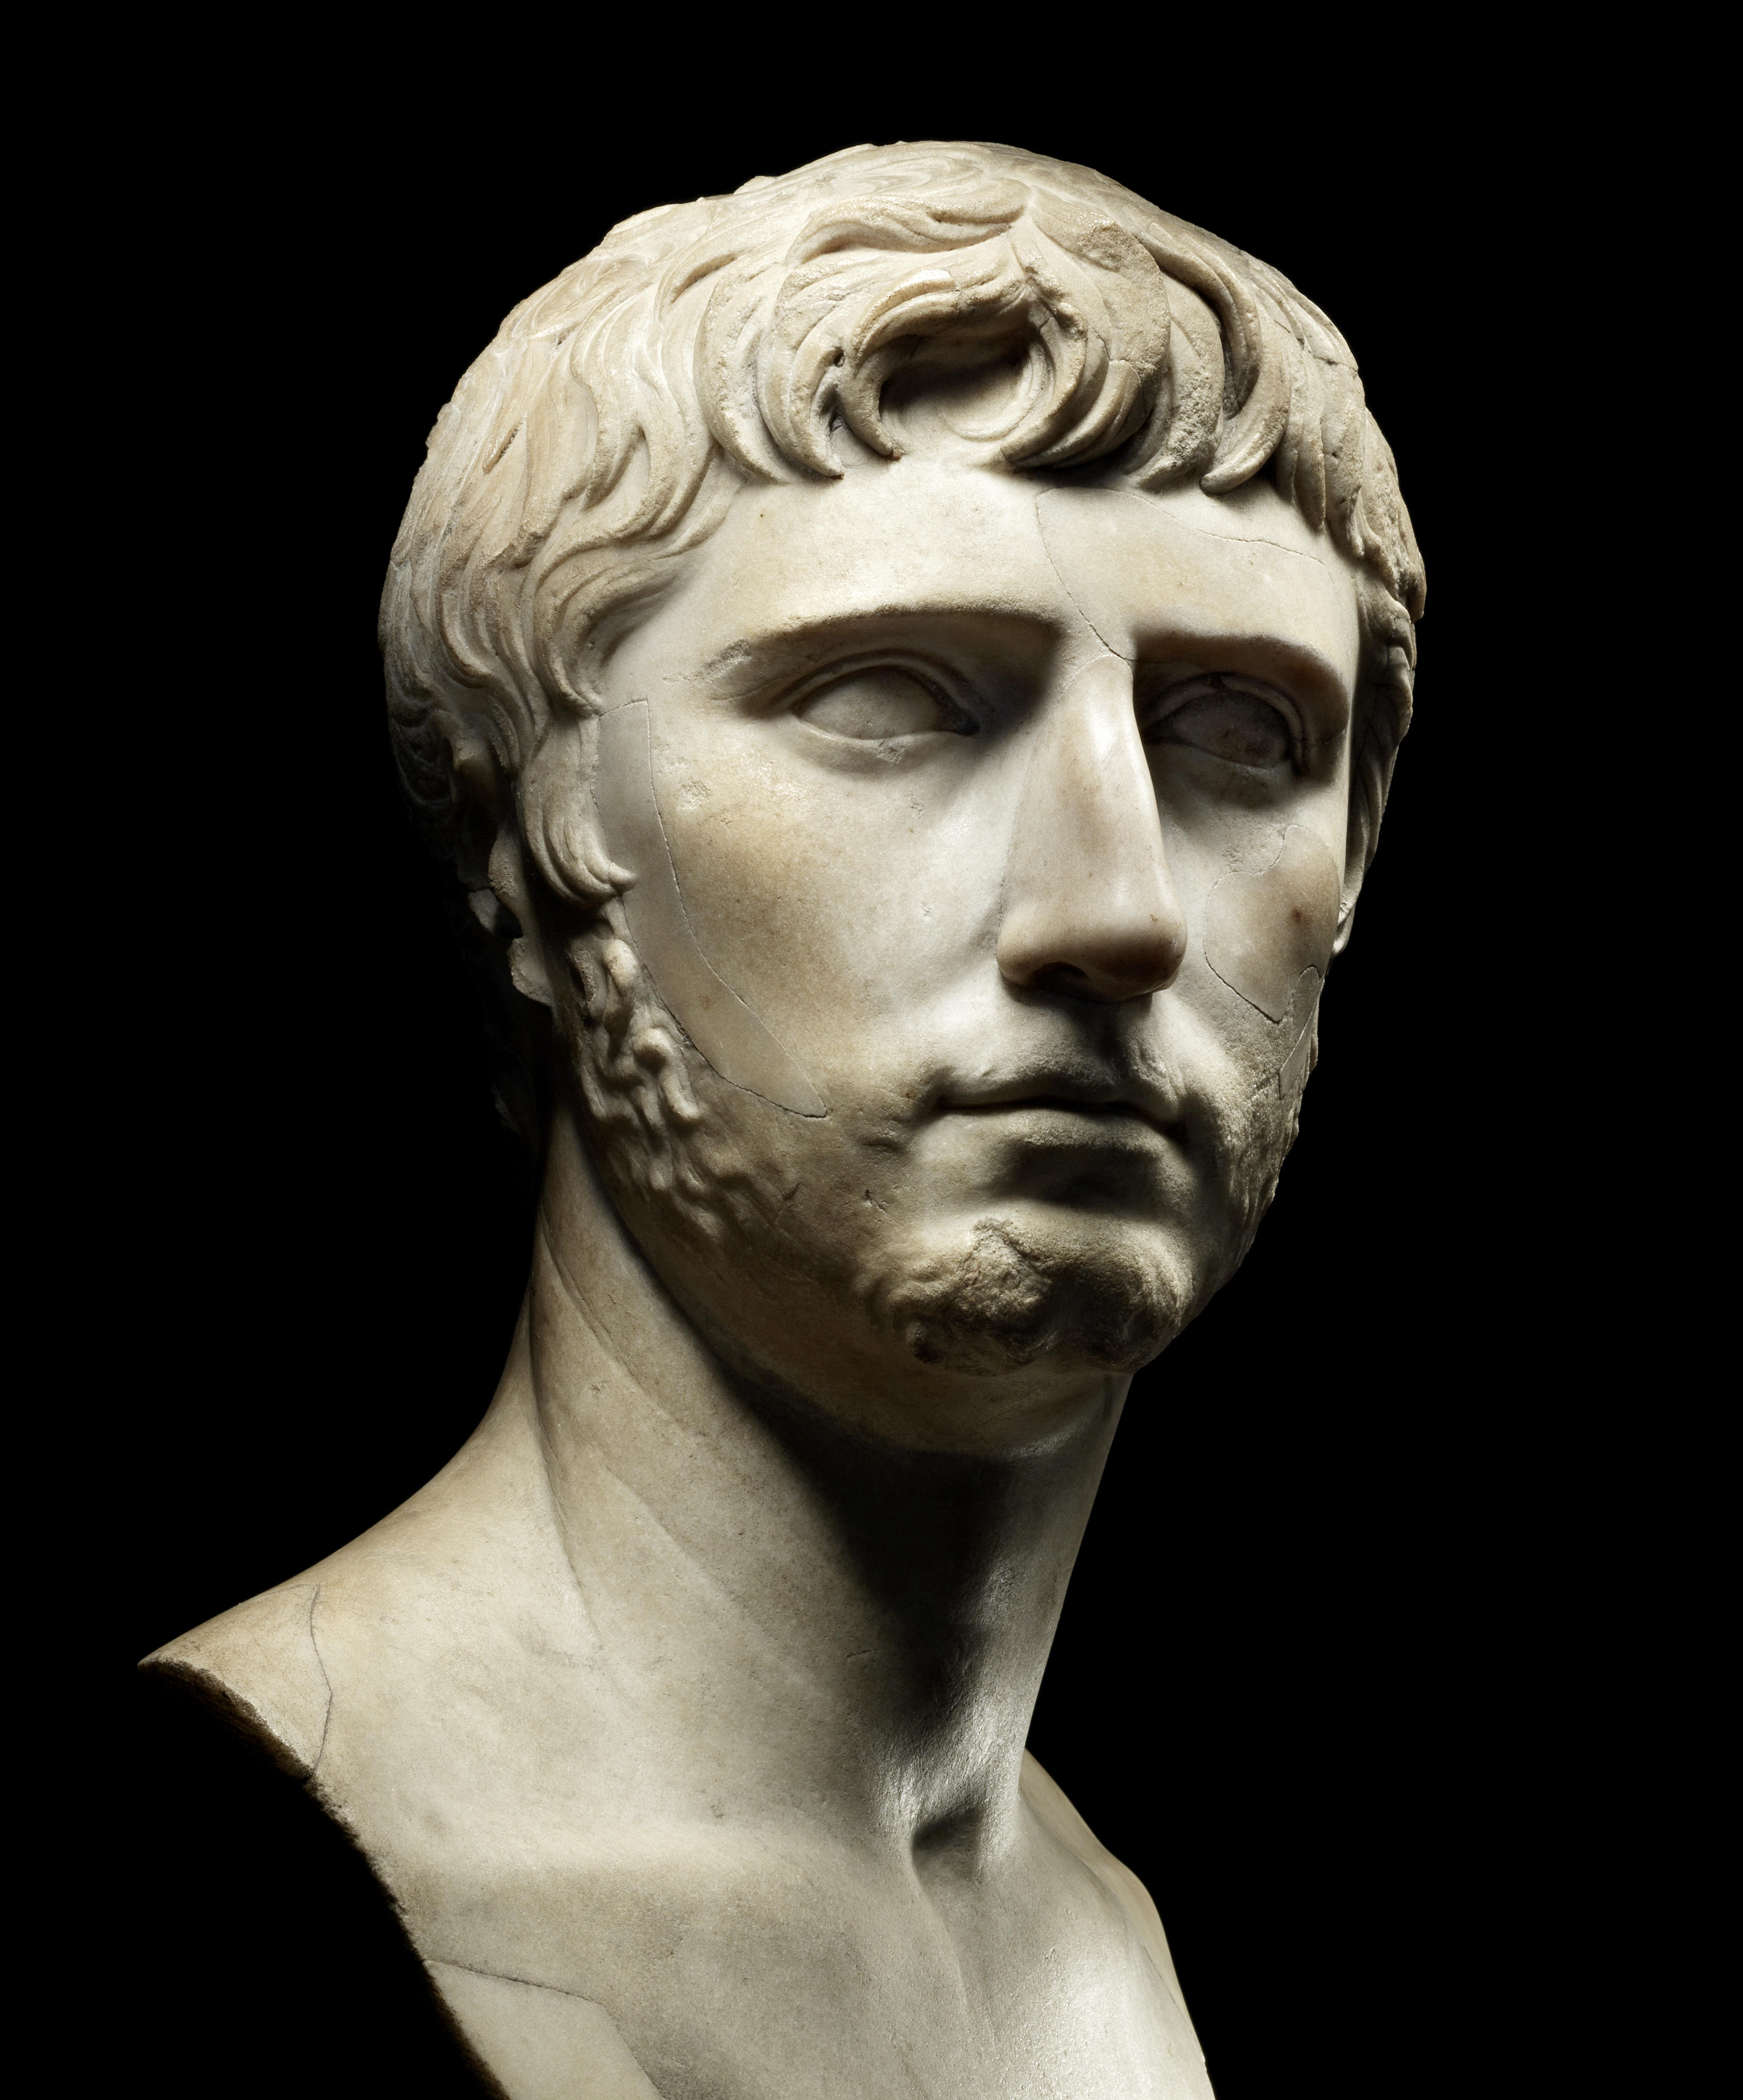 a life biography of julius caesar gaius Gaius caesar (latin: gaius julius caesar 20 bc – 21 february ad 4) was consul in ad 1 and the grandson of augustus  early life and family.